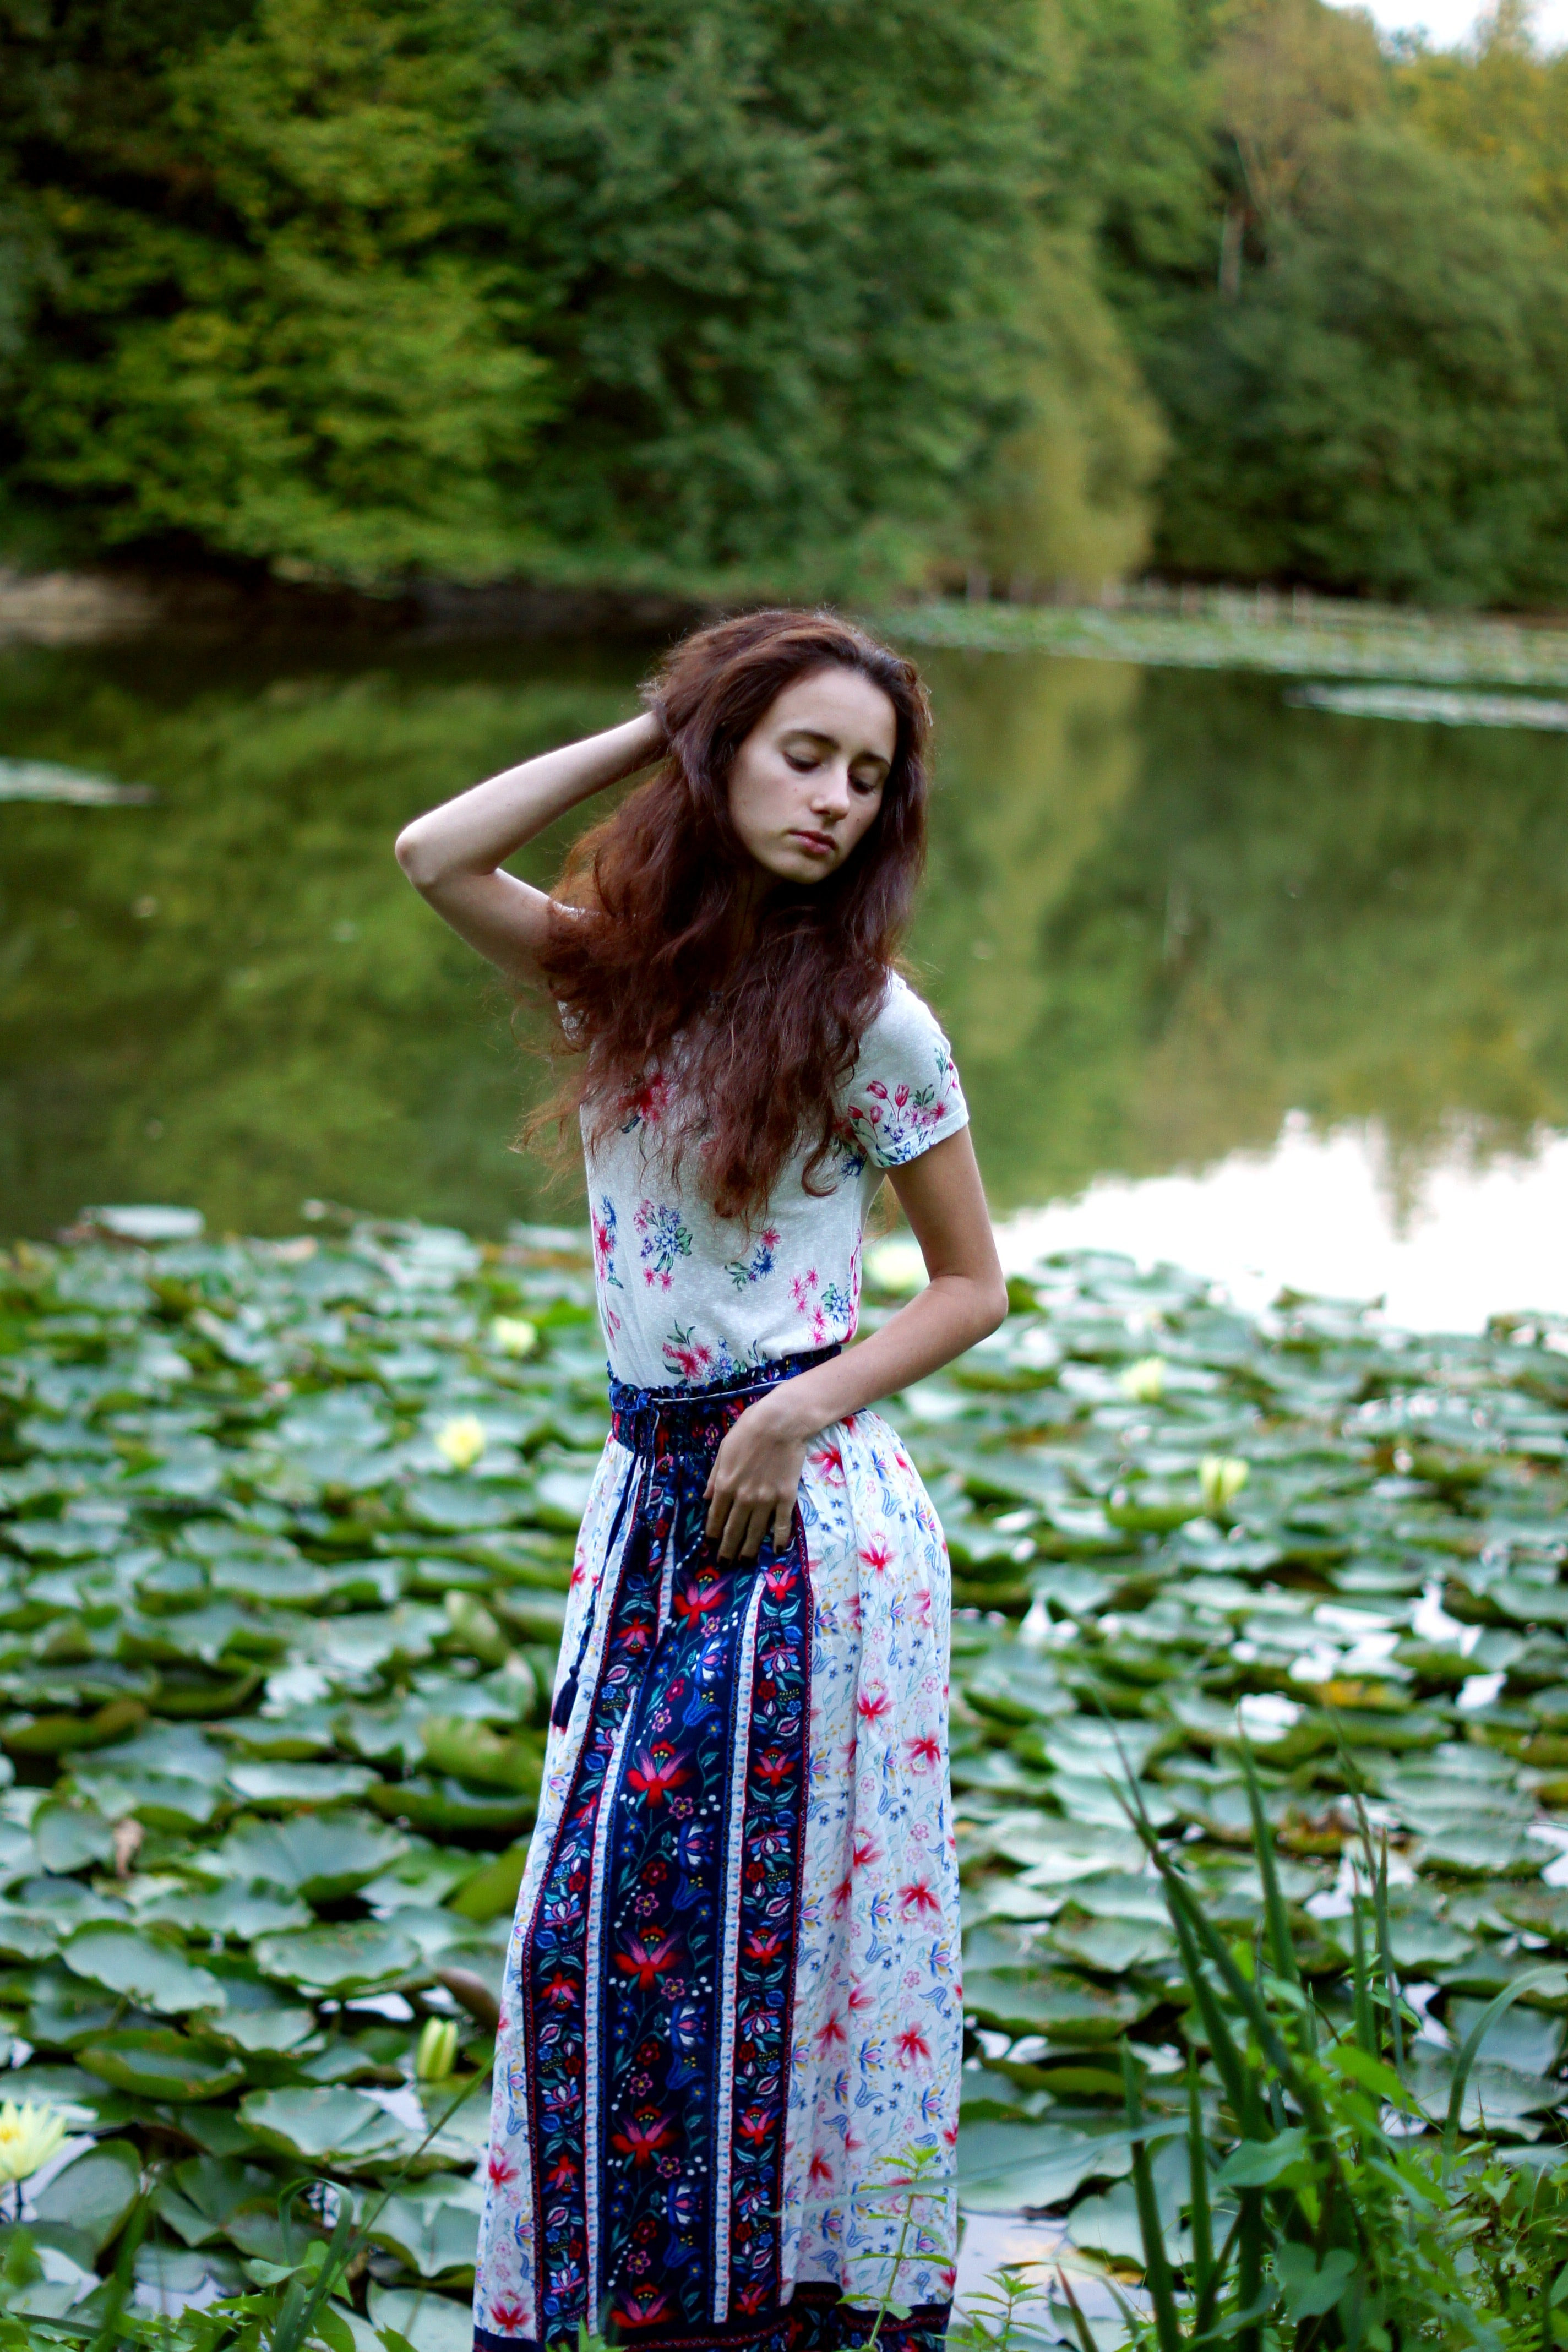 woman in white and blue floral dress standing in front of lake during daytime